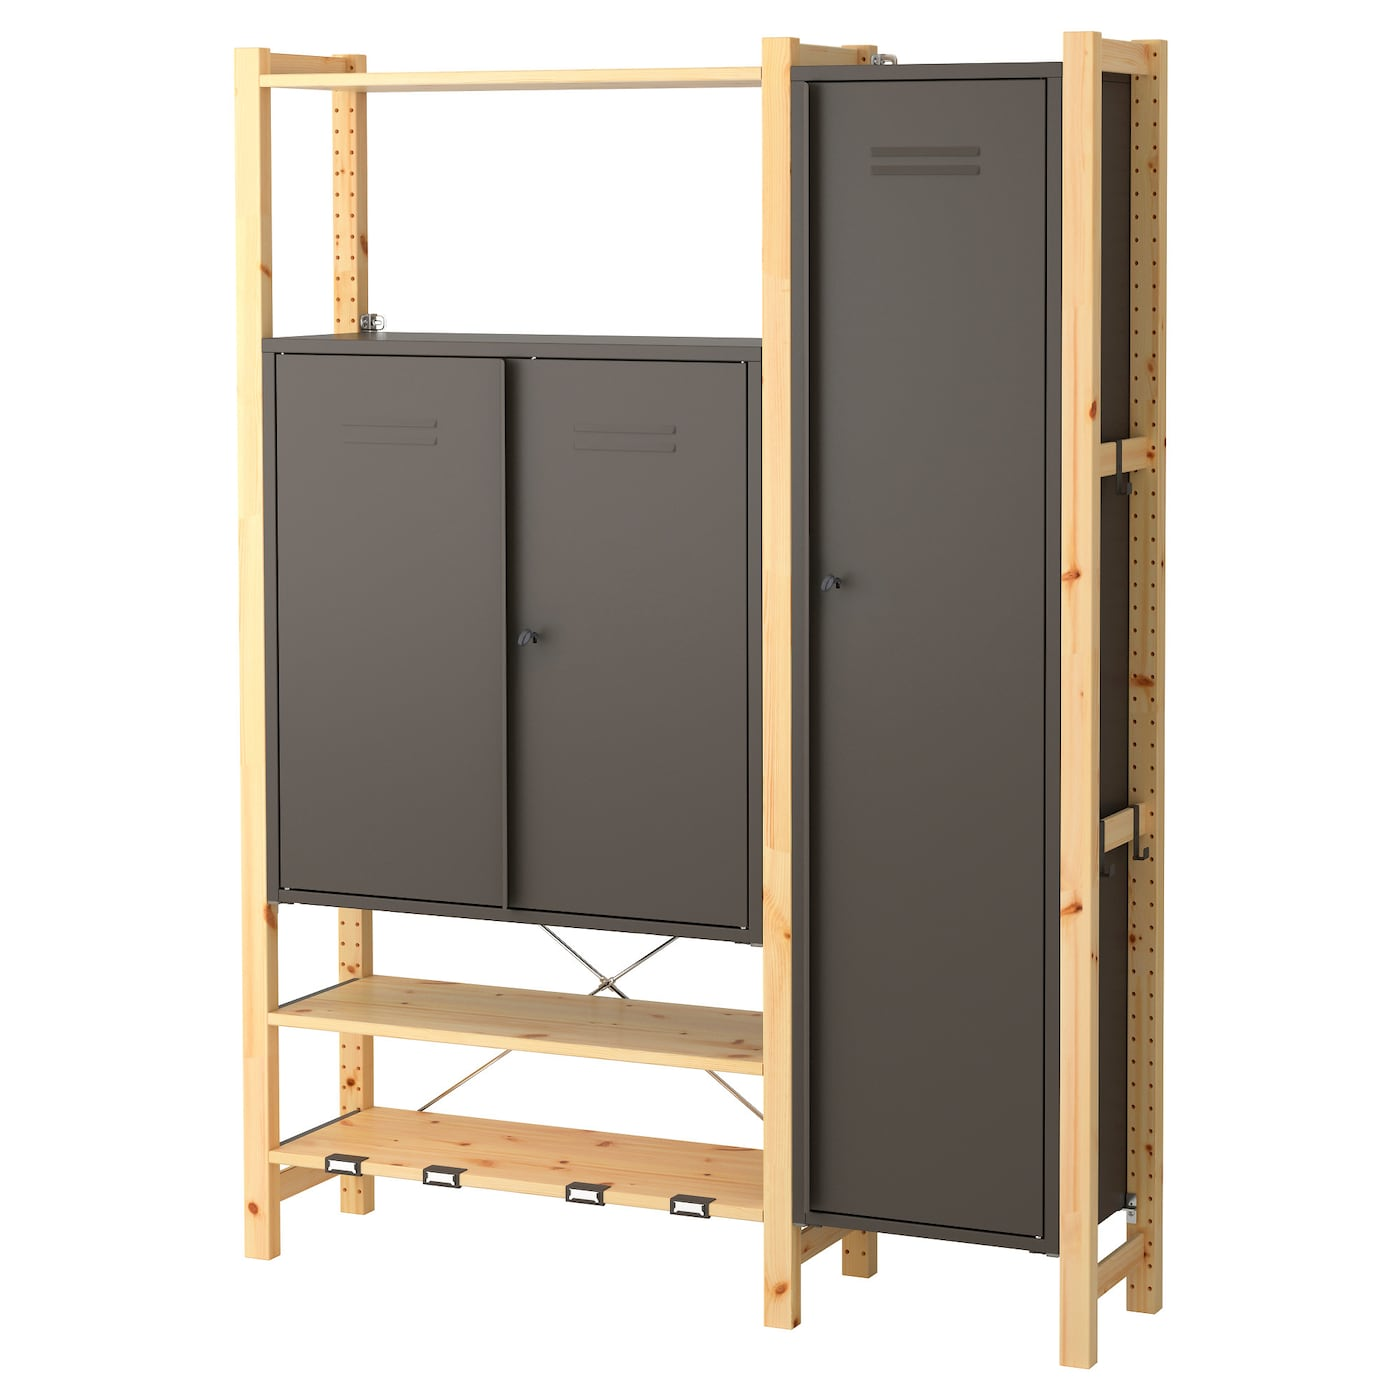 ivar 2 sections shelves cabinets pine grey 134x30x179 cm ikea. Black Bedroom Furniture Sets. Home Design Ideas